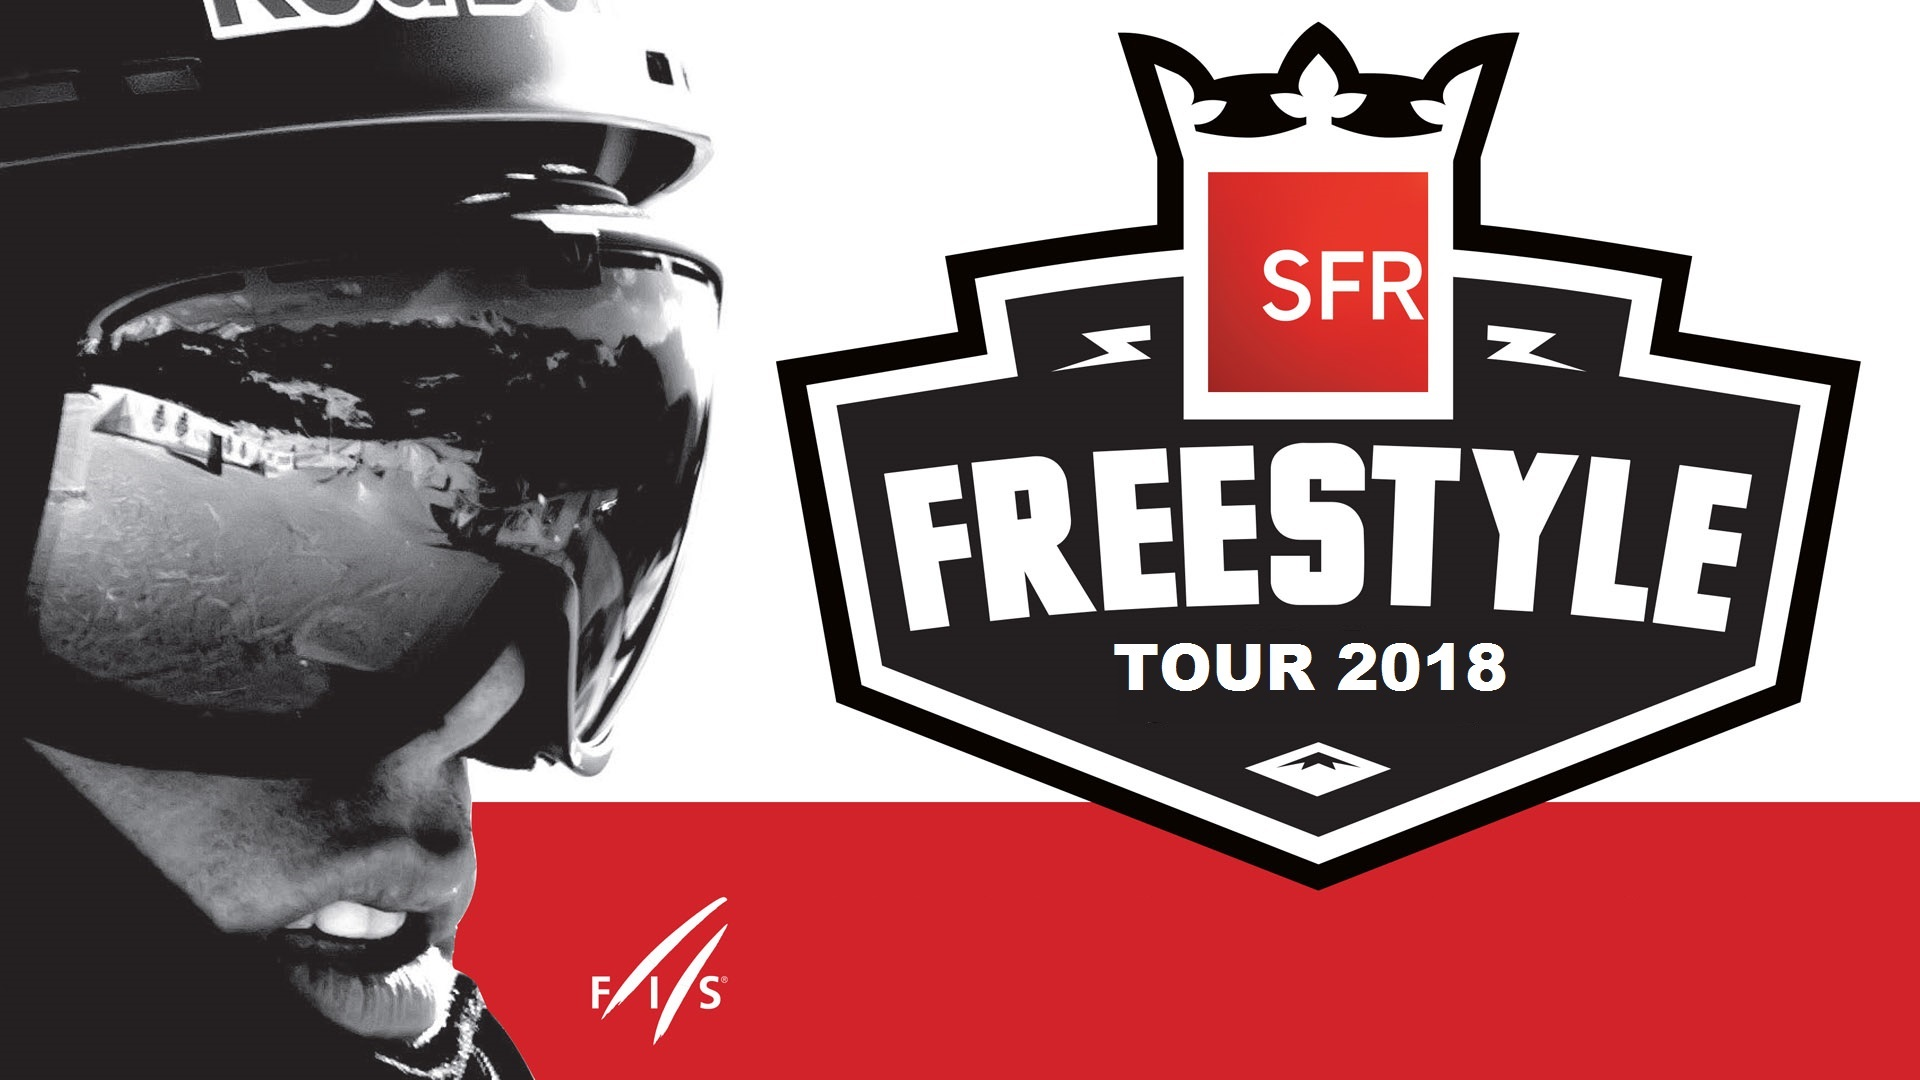 sfr-freestyle-tour-2018